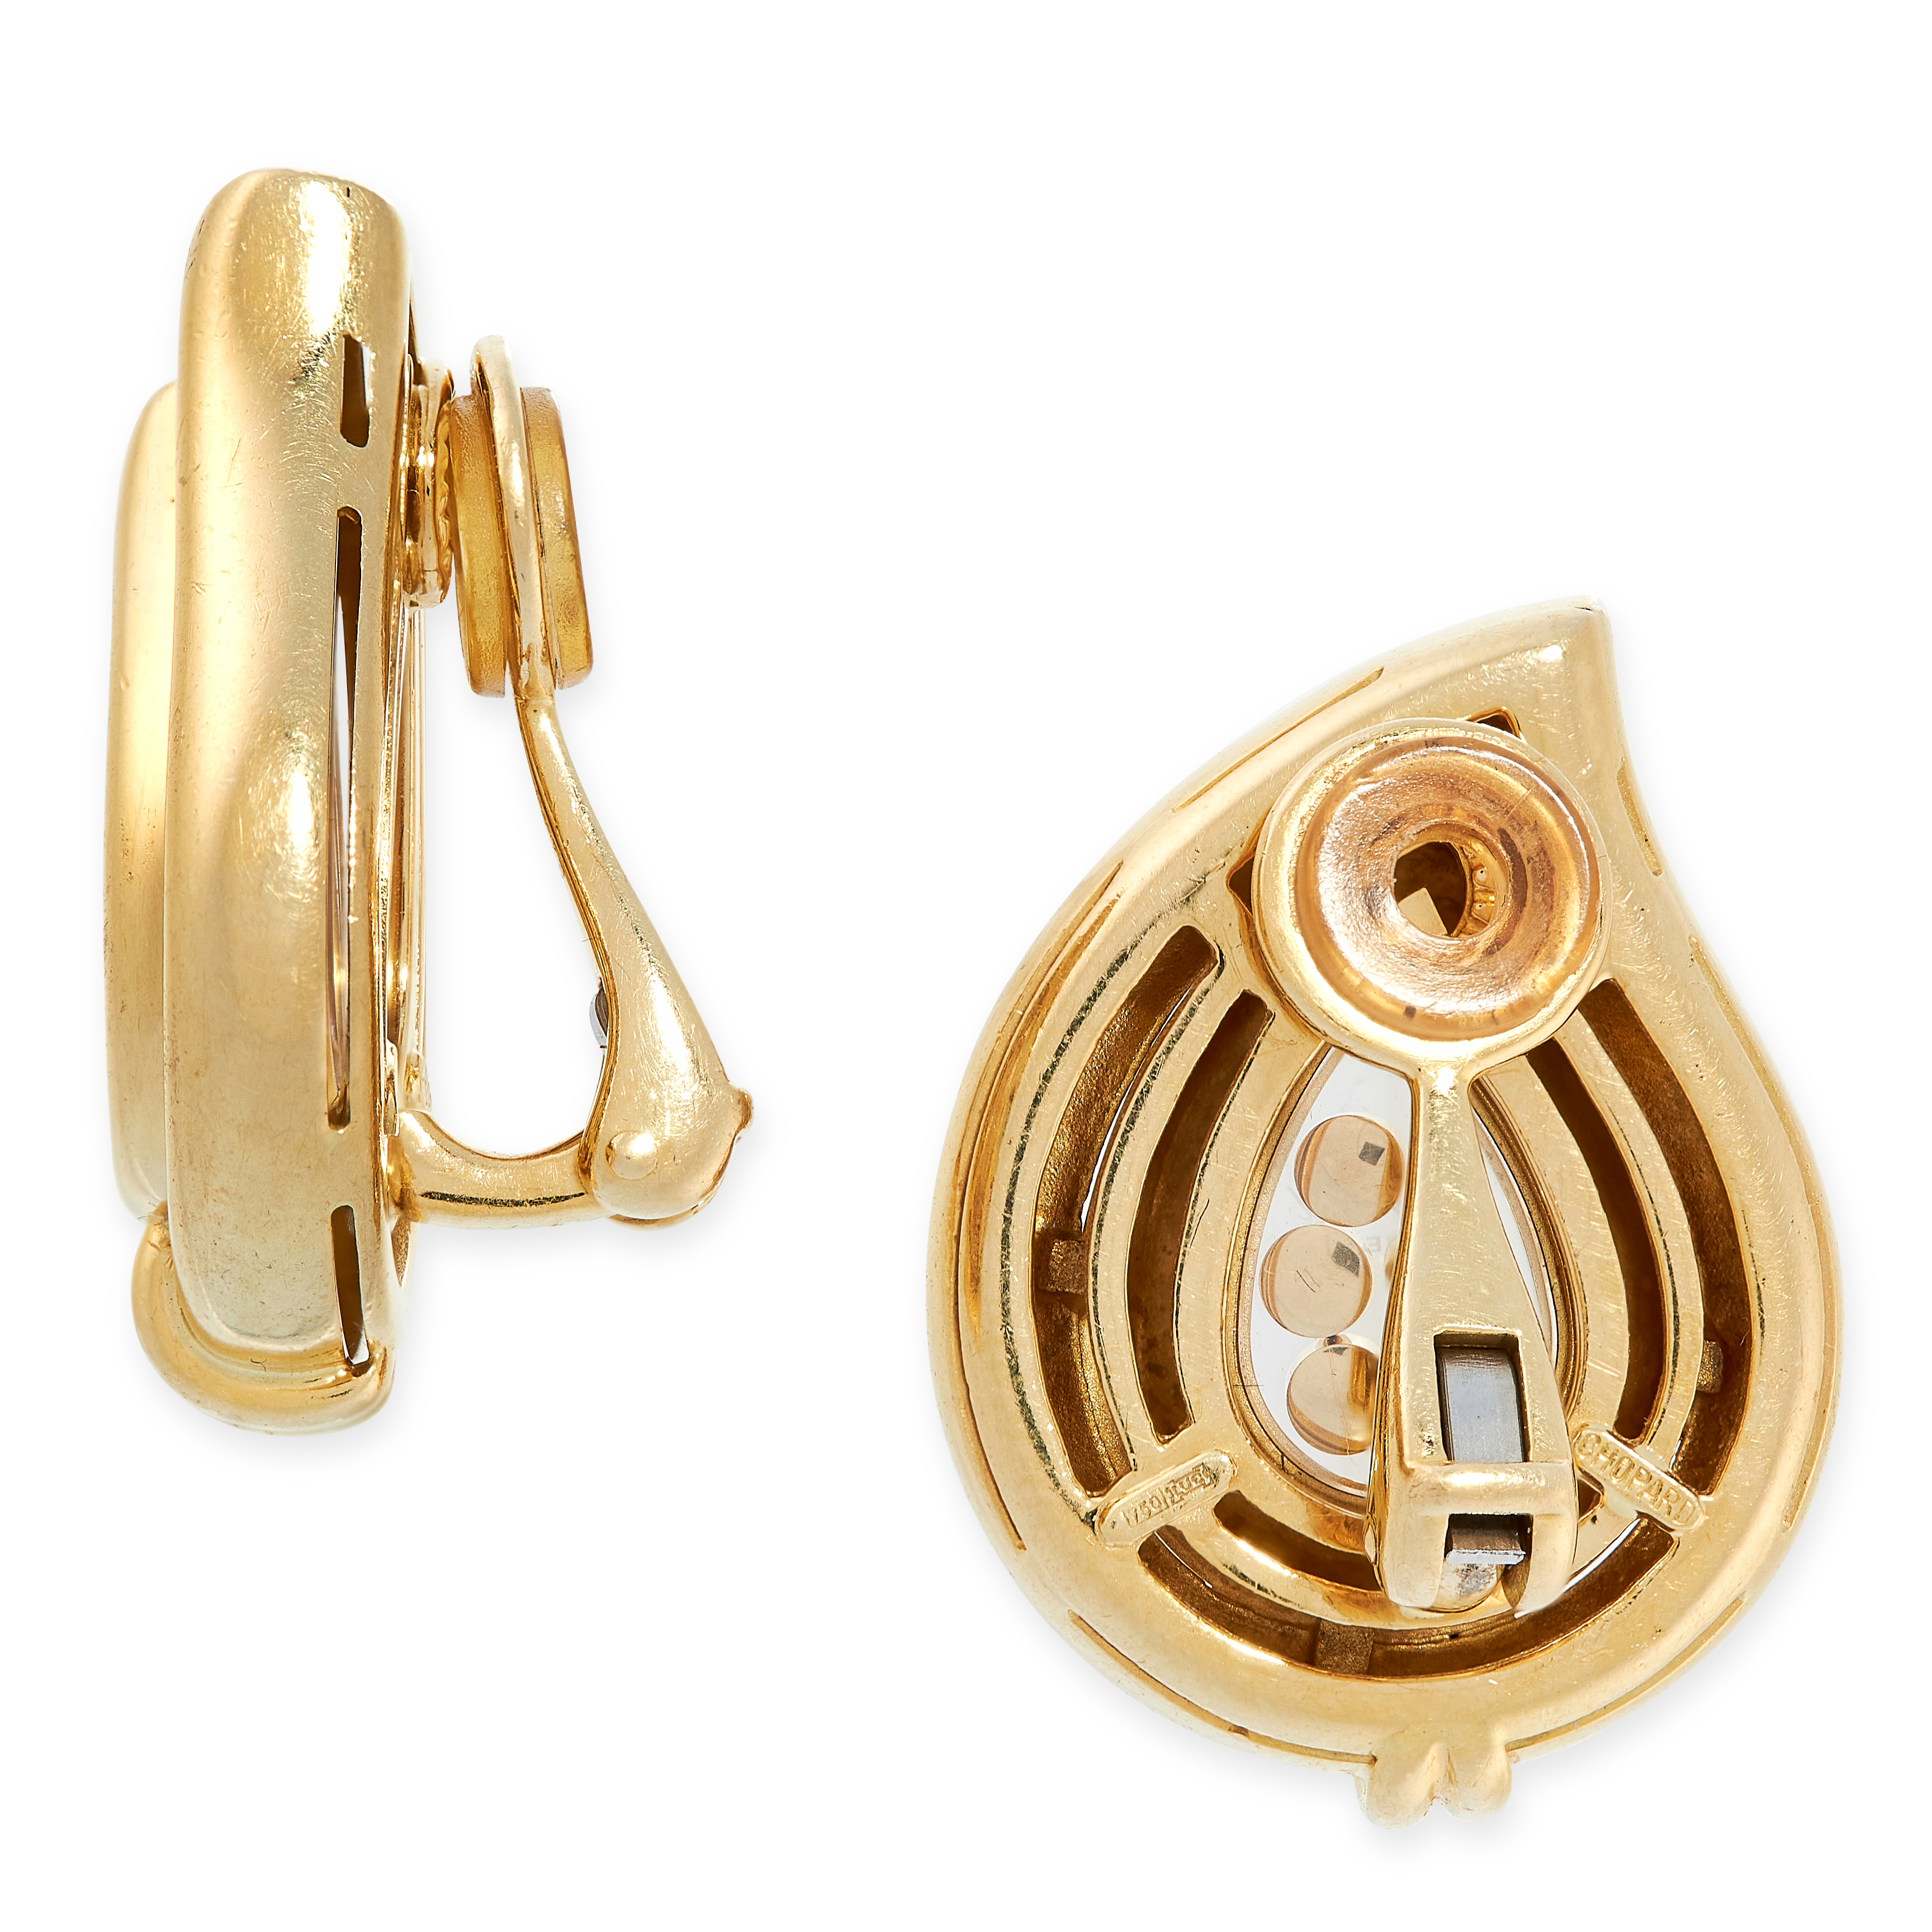 A PAIR OF HAPPY DIAMOND CLIP EARRINGS, CHOPARD in 18ct yellow gold, of drop shaped design, each - Image 2 of 2